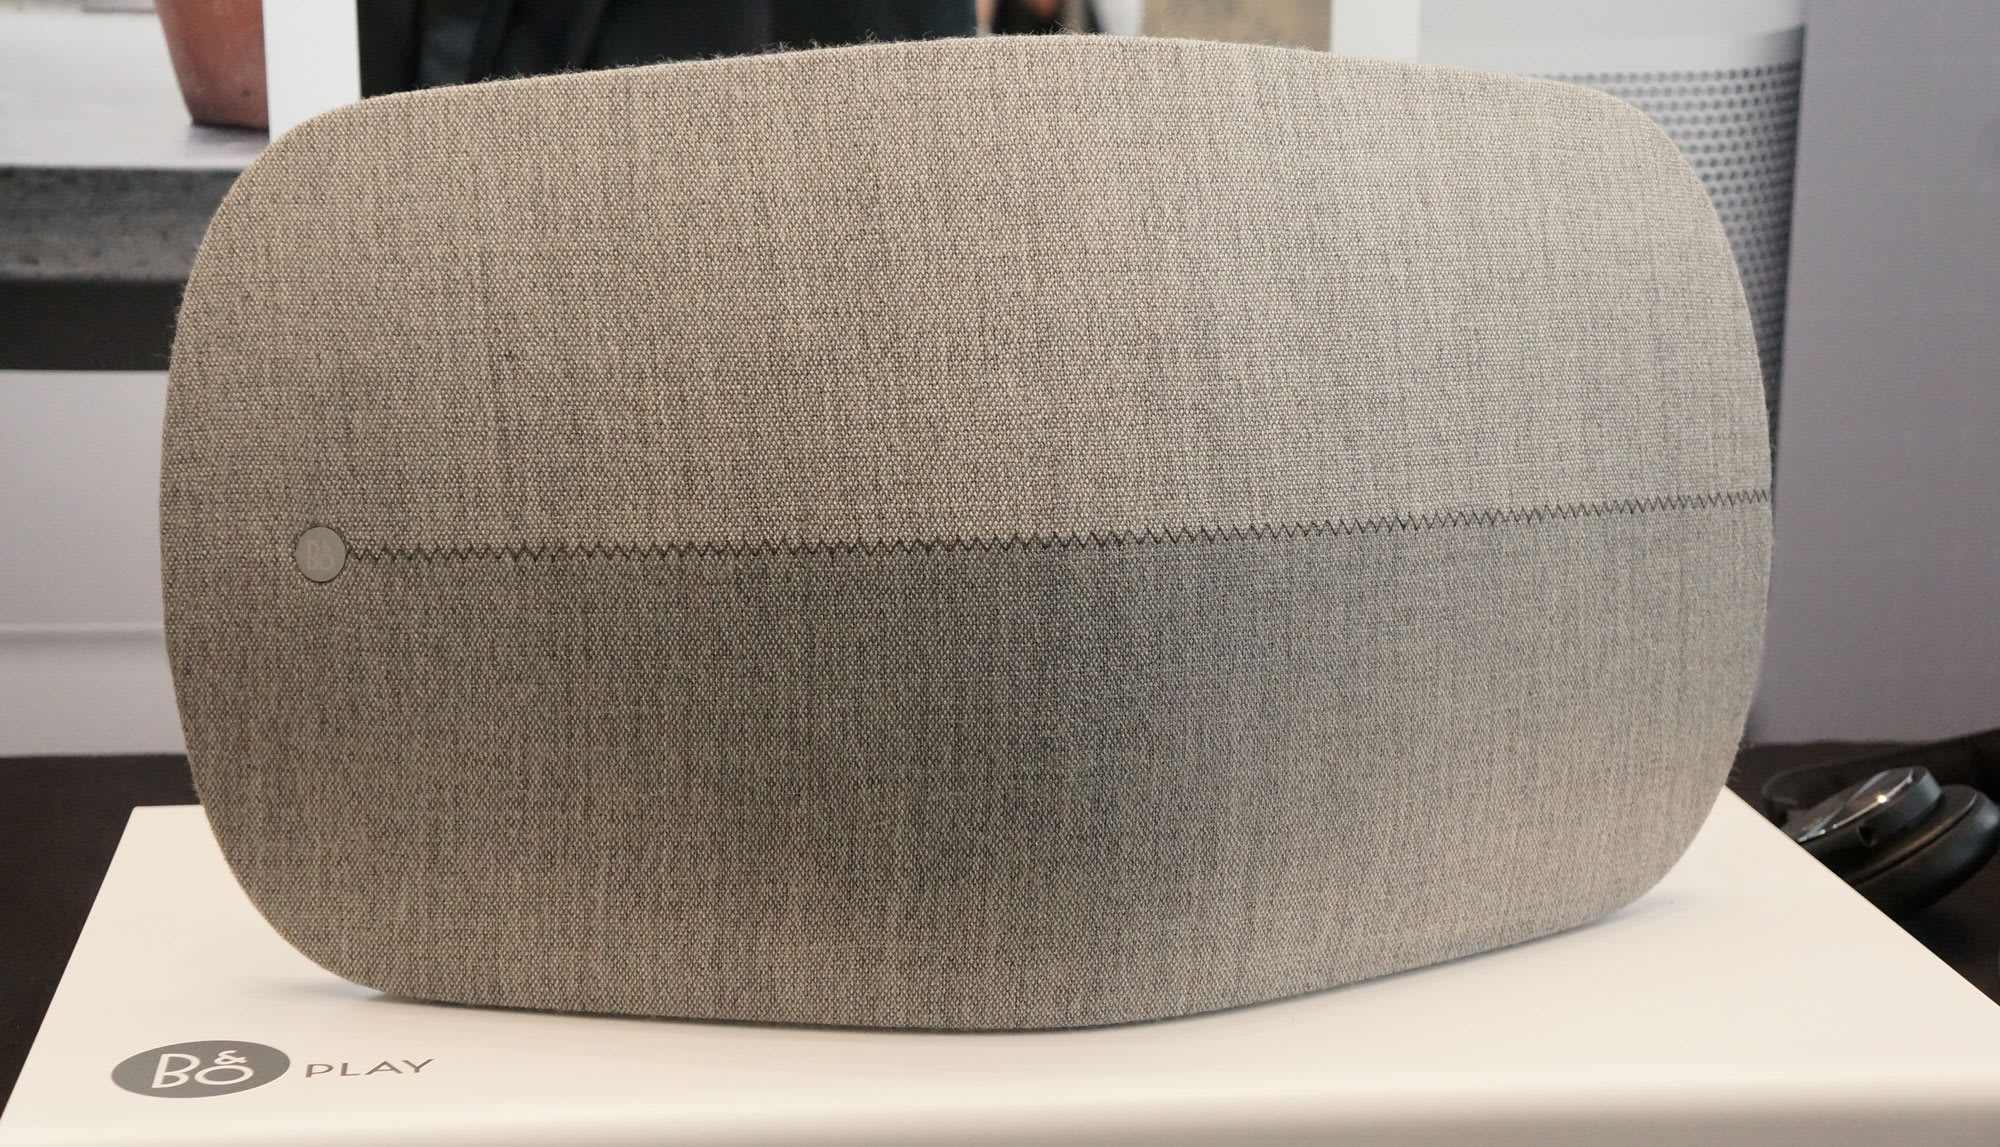 ee2bbffd10d964 Luxury audiovisual brand Bang & Olufsen (B&O) has just announced a pricey  wireless speaker, the $999 BeoPlay A6. The style evokes the back of a  chair, ...